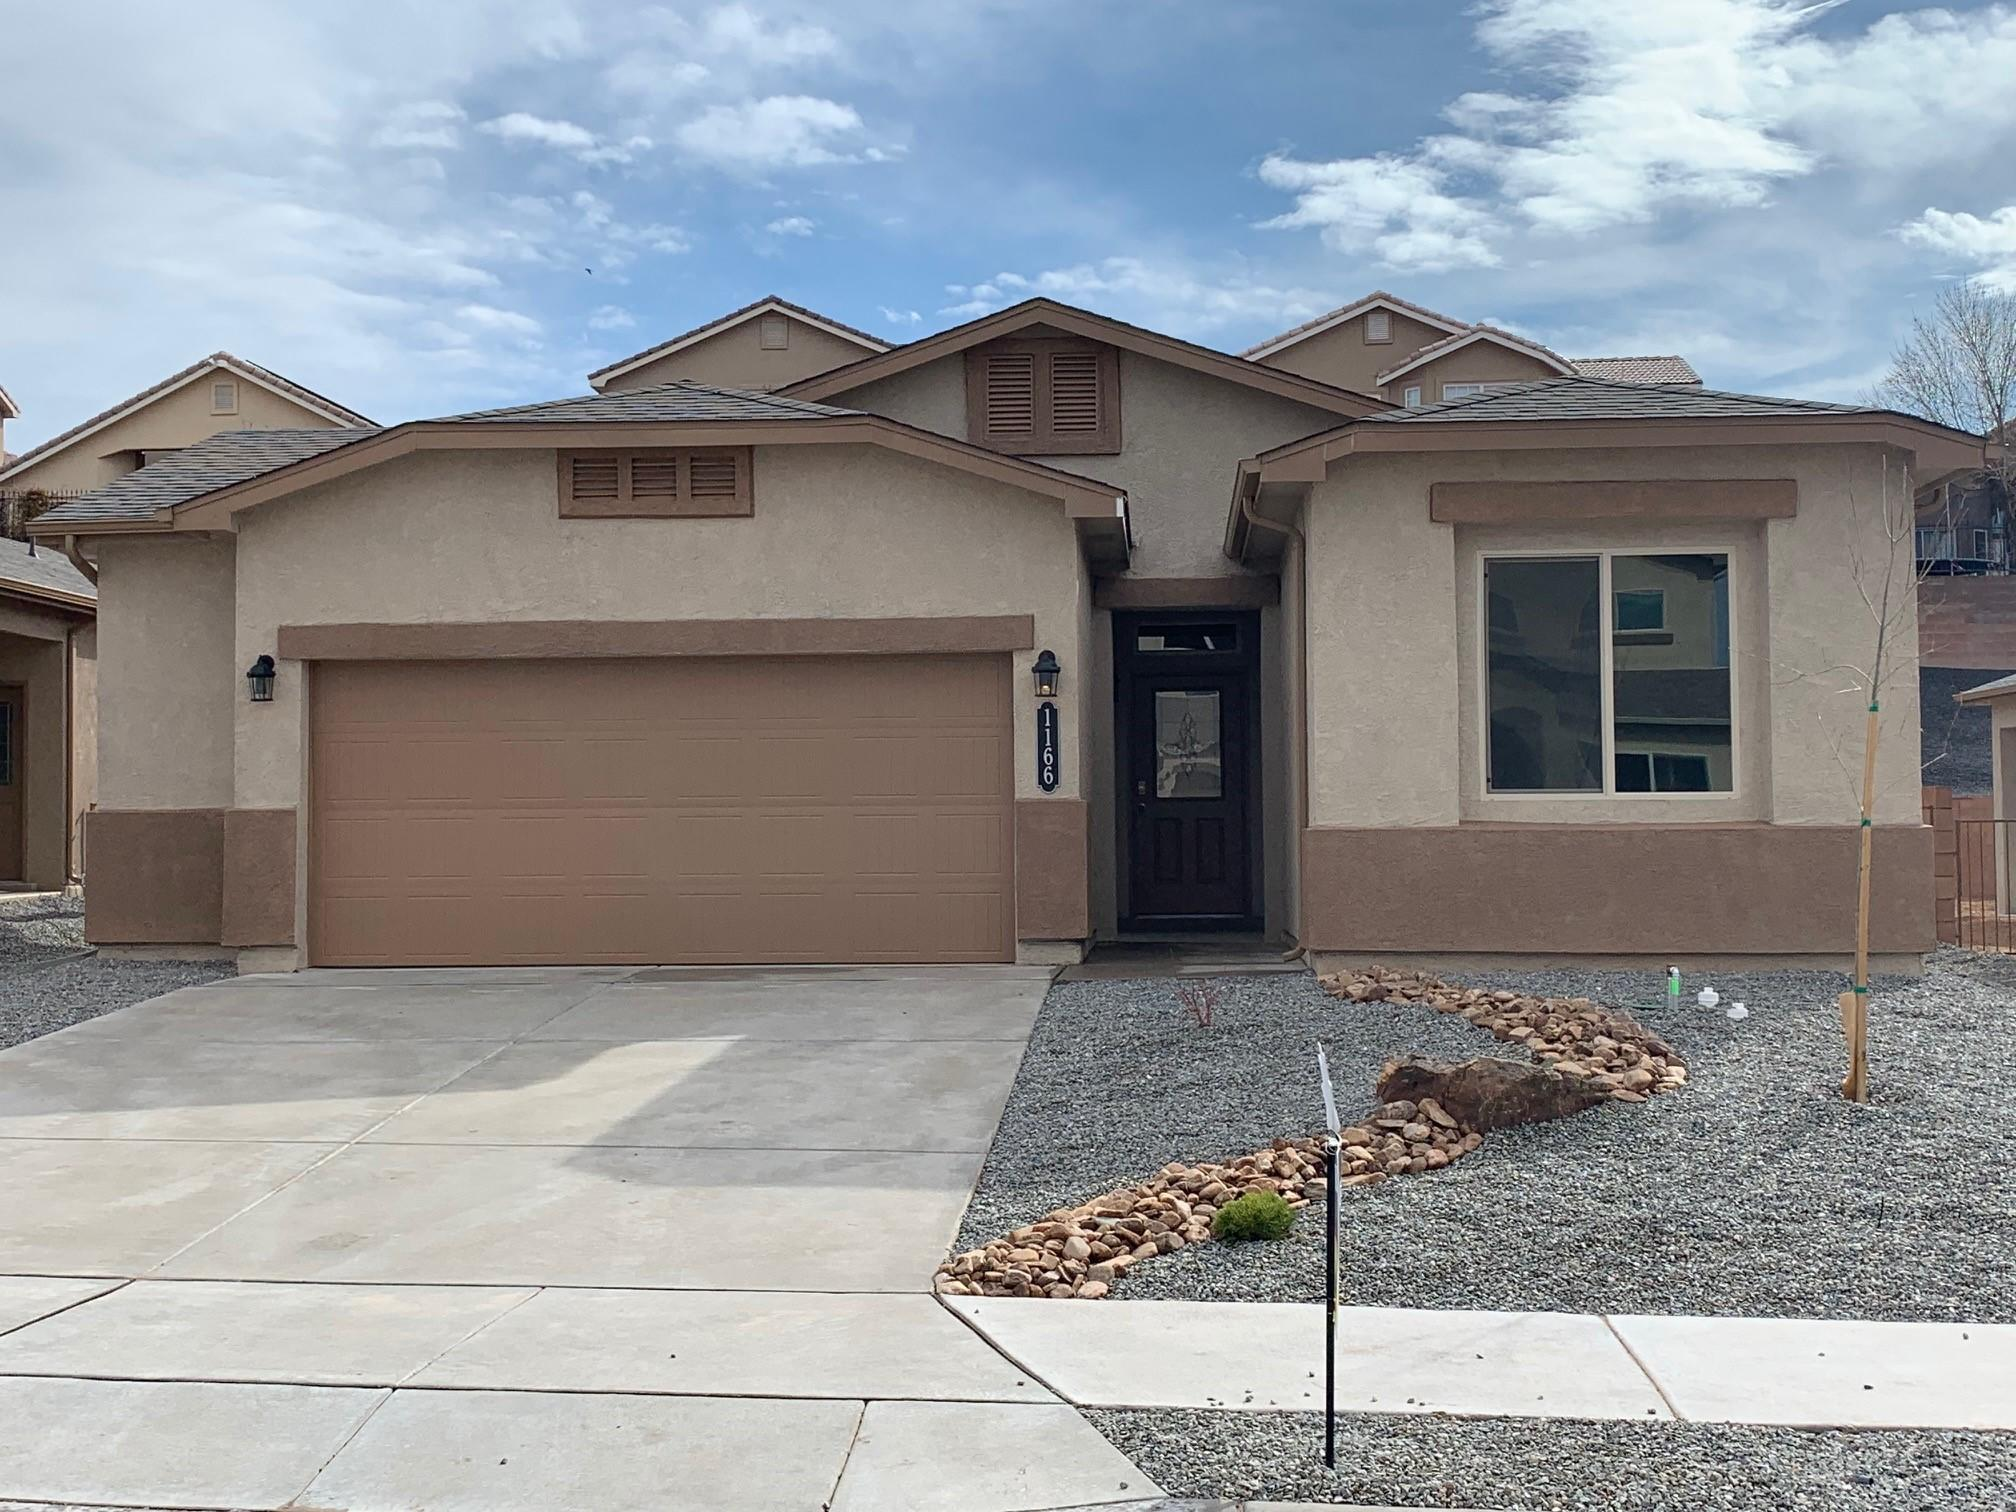 1166 NE Fascination Street, Rio Rancho in Sandoval County, NM 87144 Home for Sale